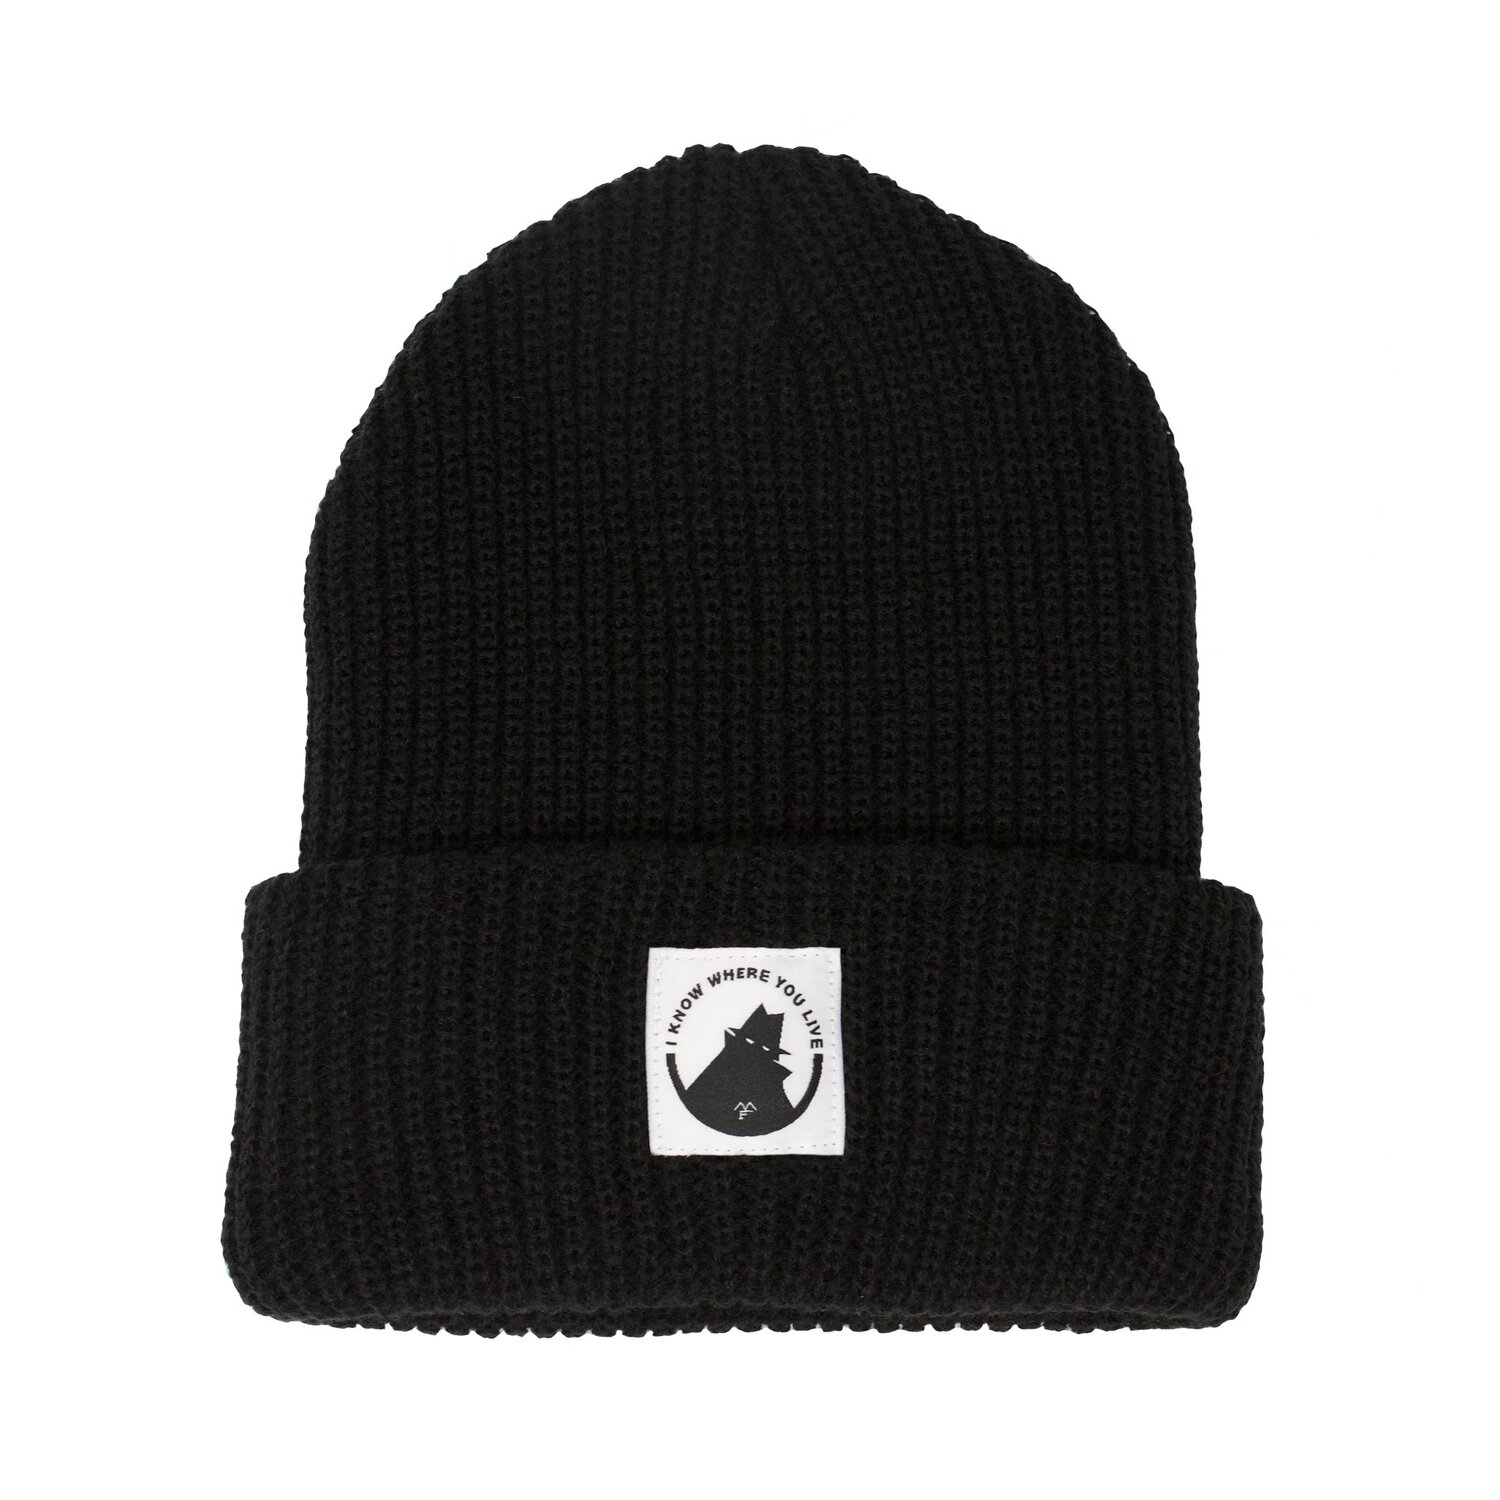 NeighborHoodWatch_beanie.jpg